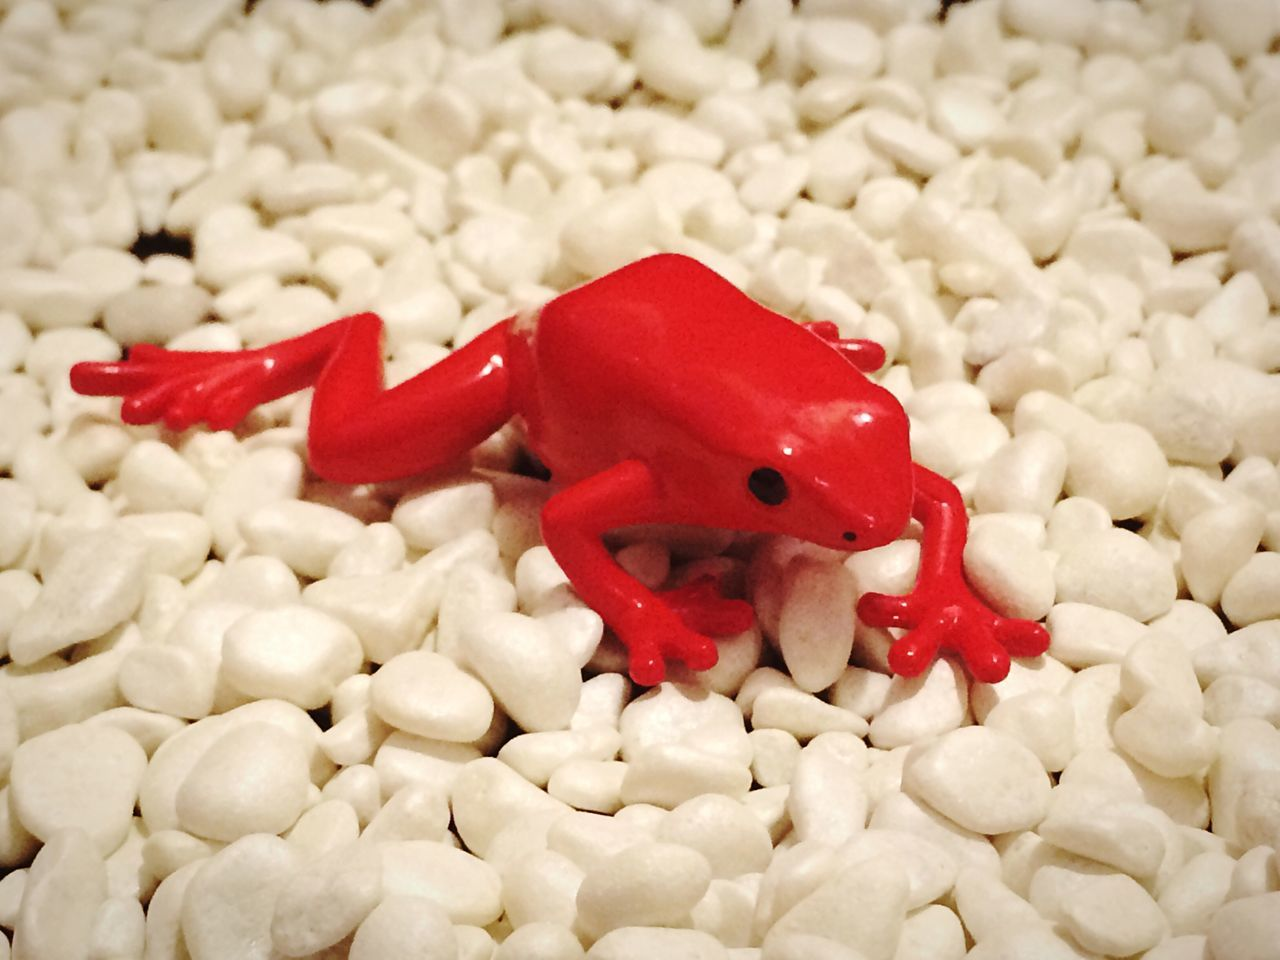 Miniature Red Frog Toy